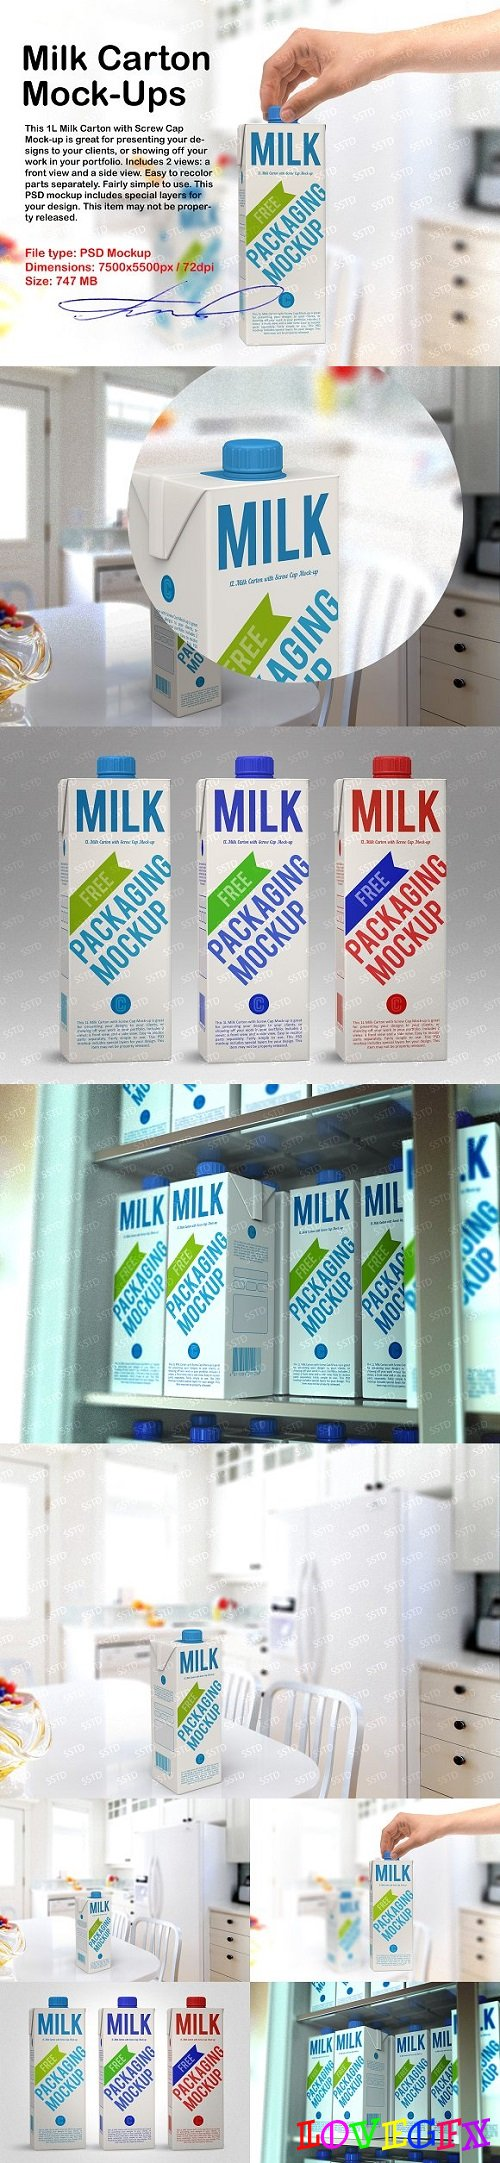 Milk Carton Mock-Ups 1613399